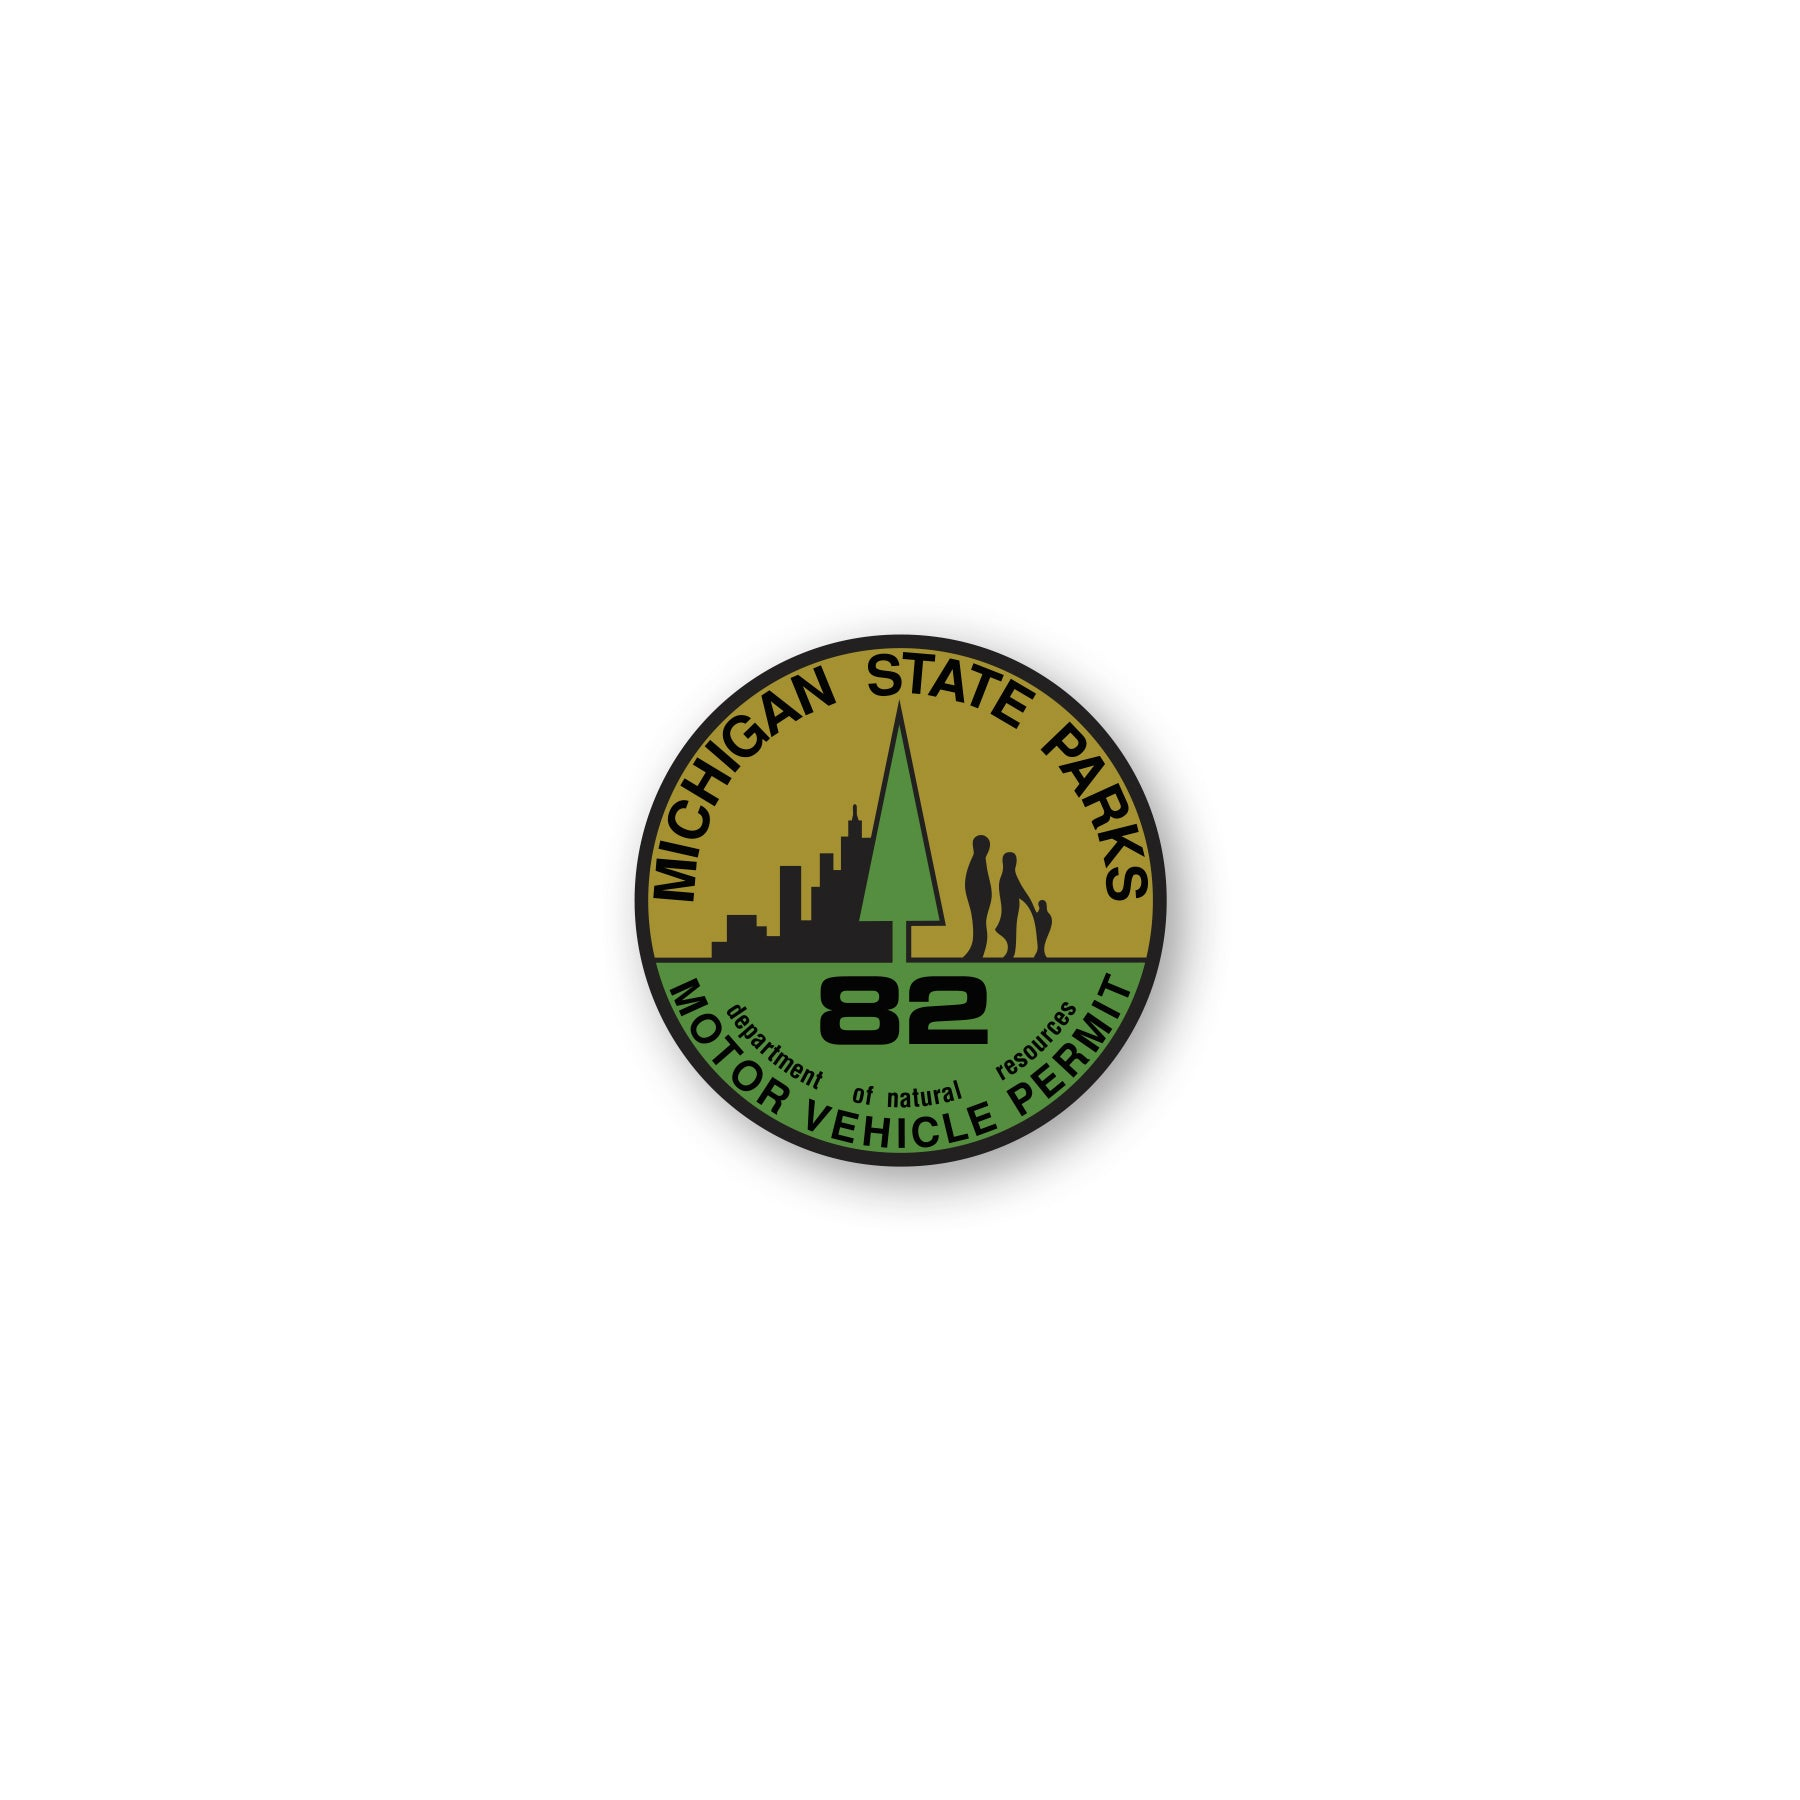 Michigan State Parks Permit Sticker - 1982